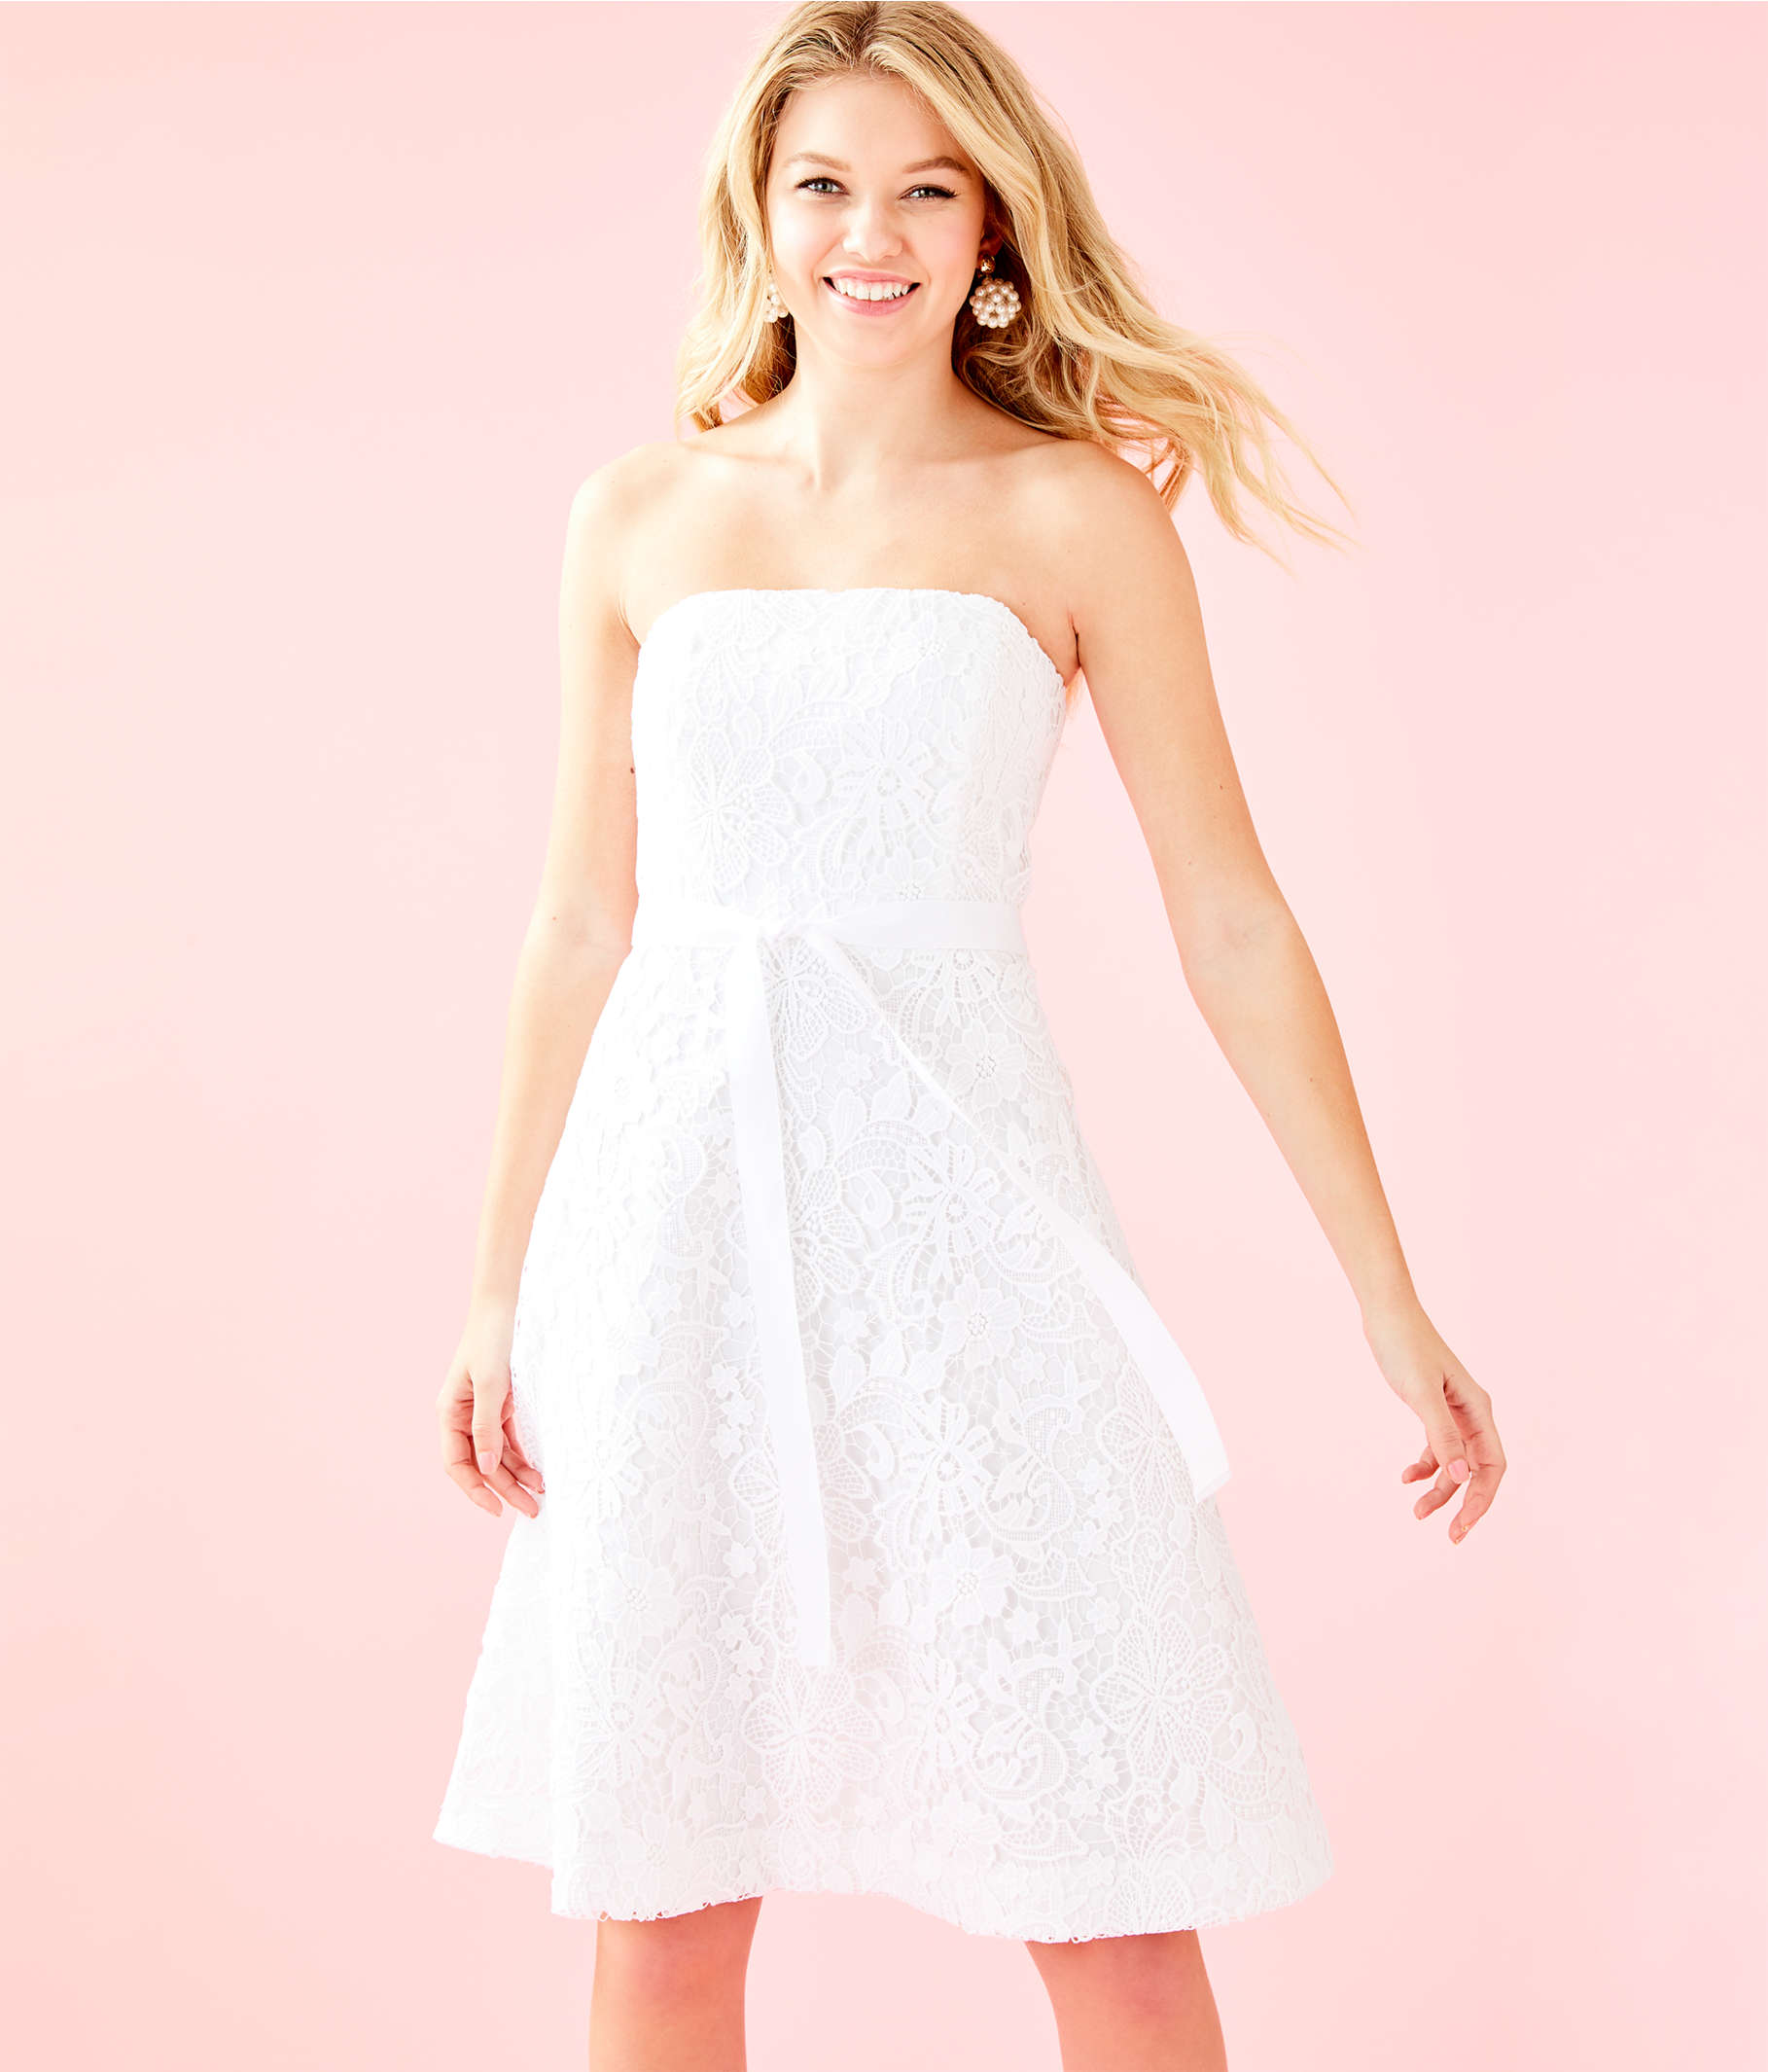 21816a735ebd White Lace Strapless Cocktail Dress